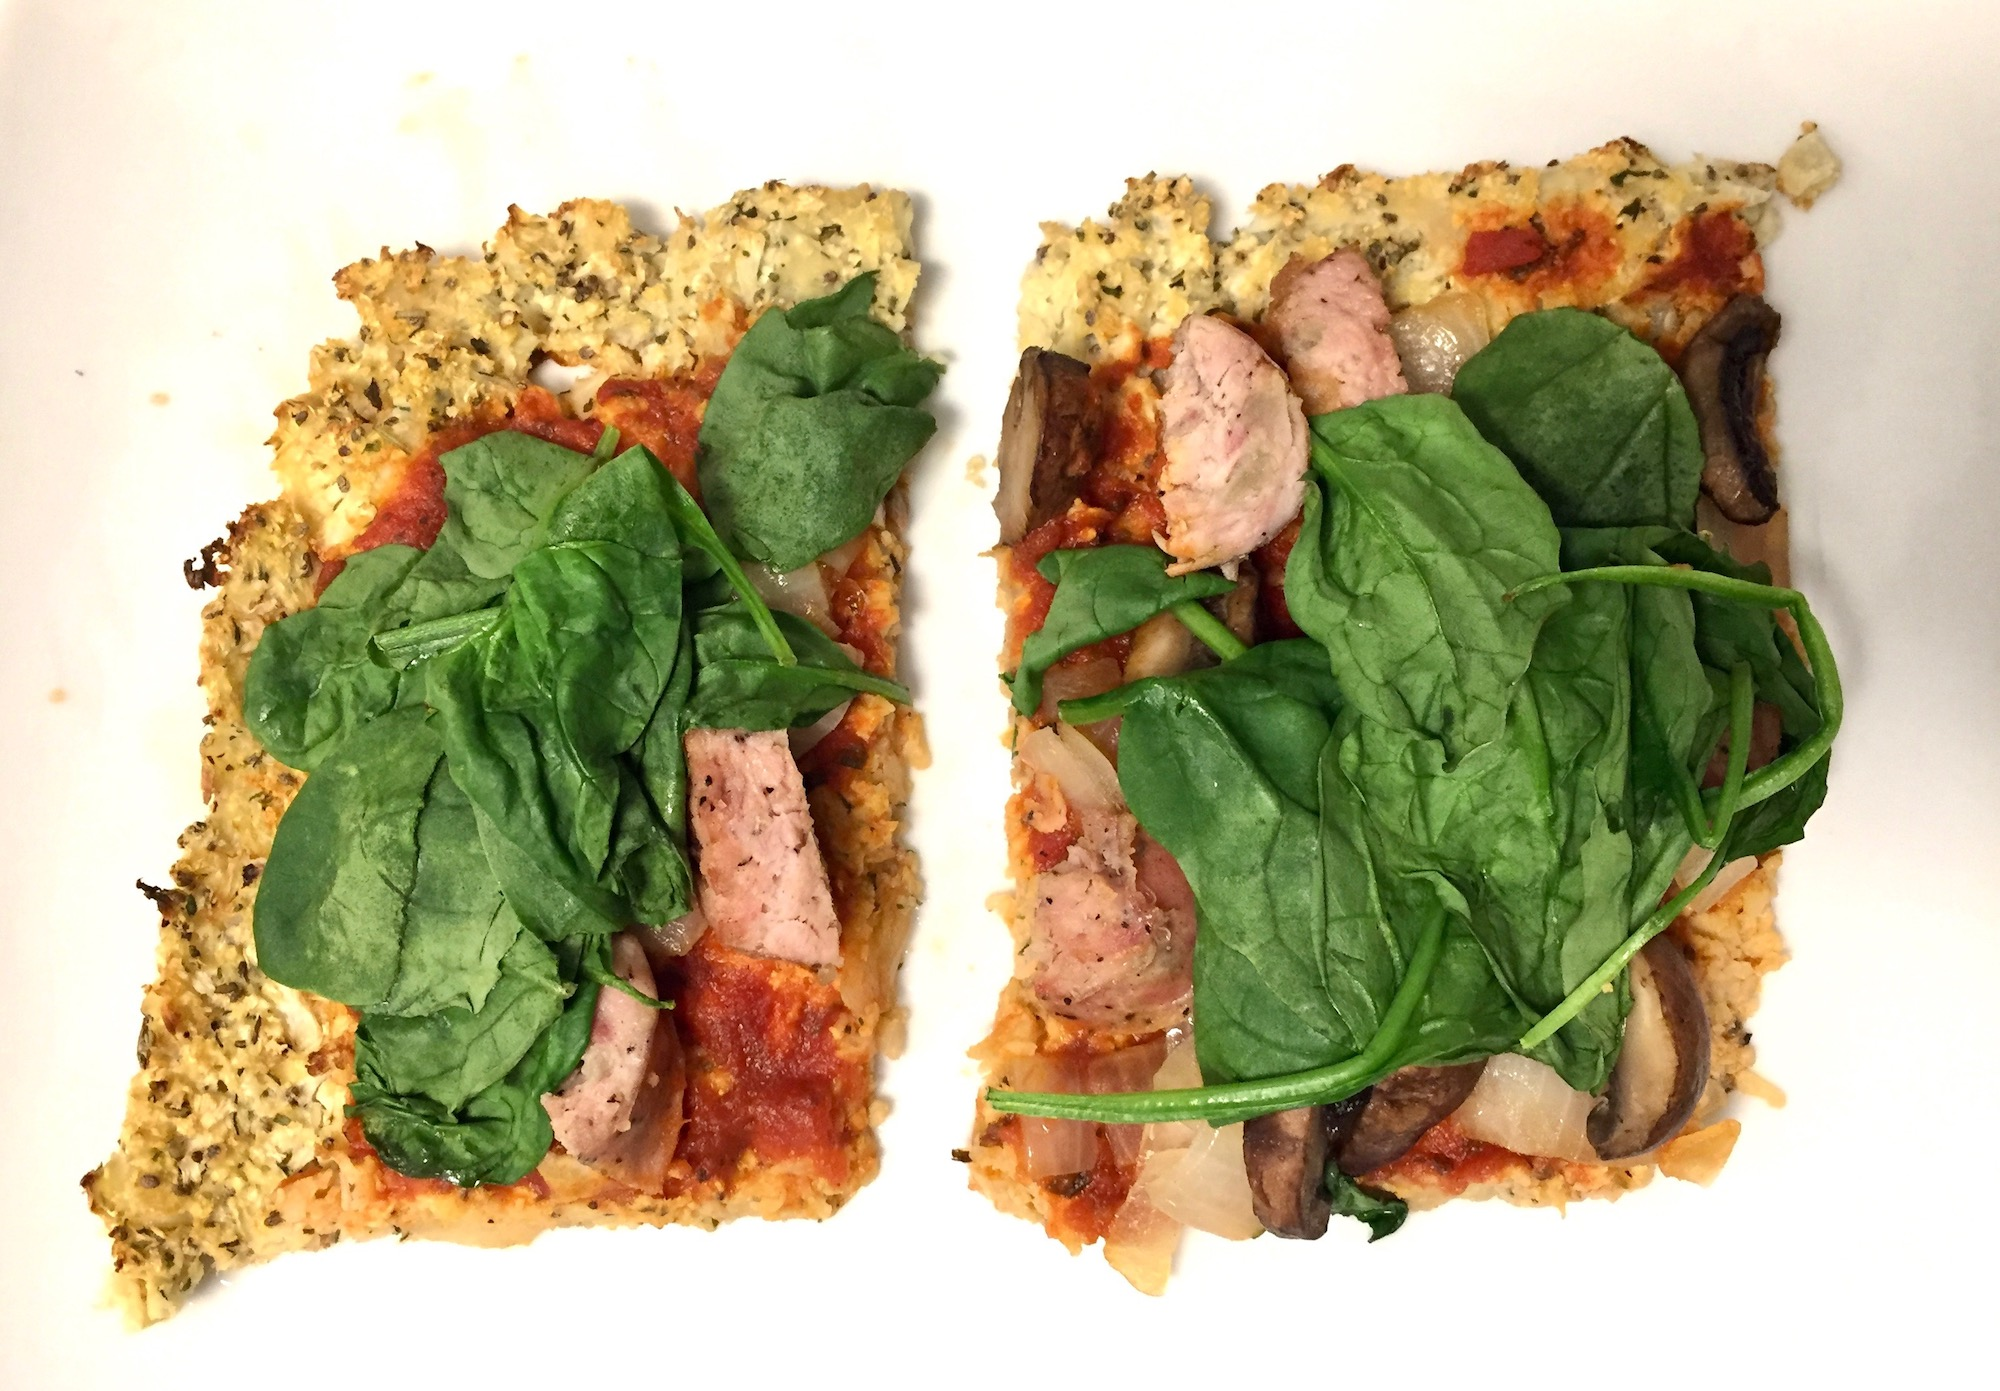 Paleo Cauliflower Pizza With Sausage And Spinach